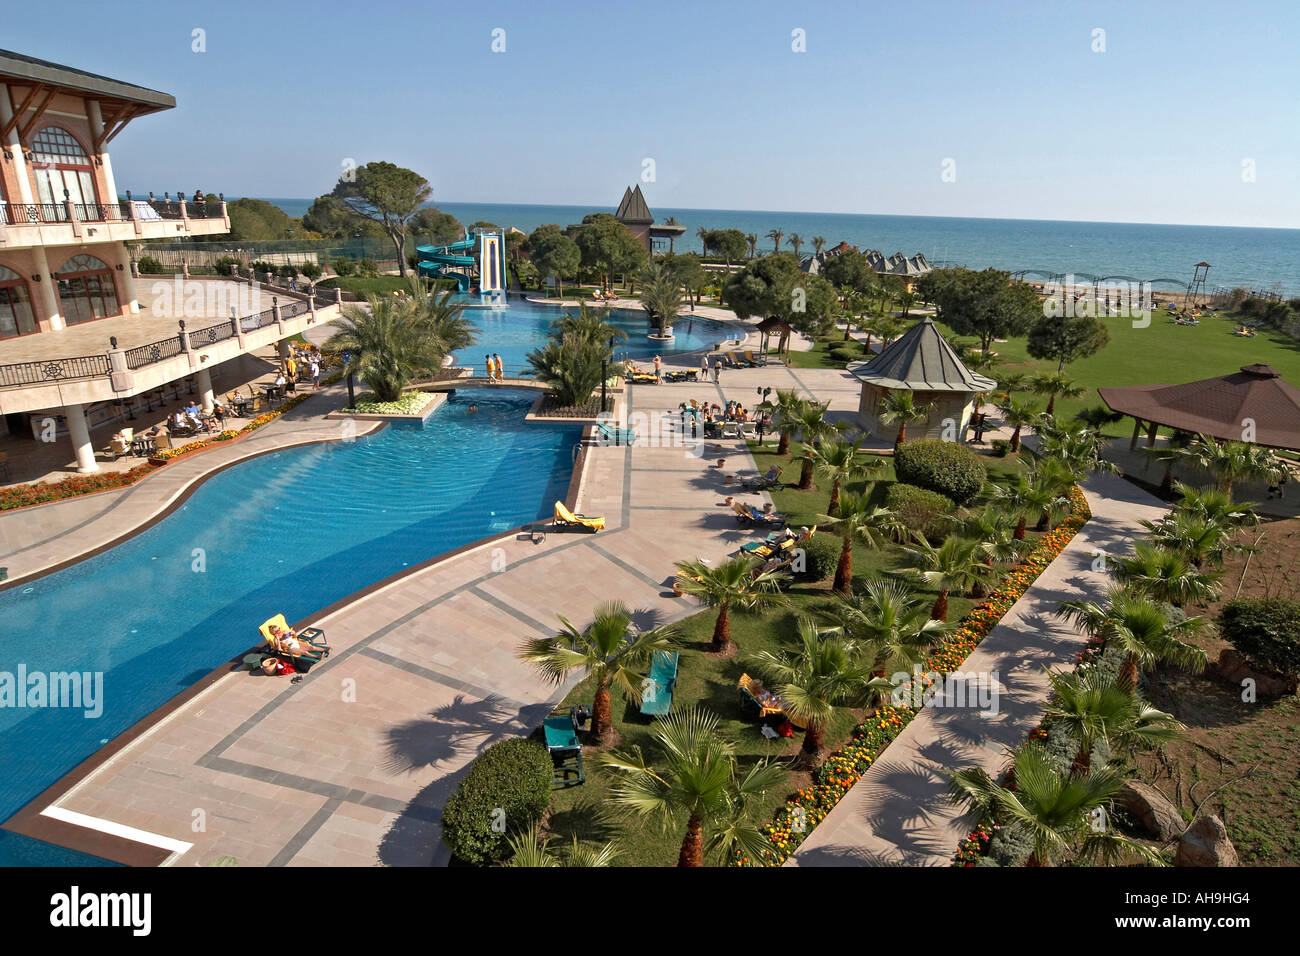 Mediterranean Sea With Gardens And Swimming Pool Of Papillon Zeugma 5 Stock Photo Royalty Free